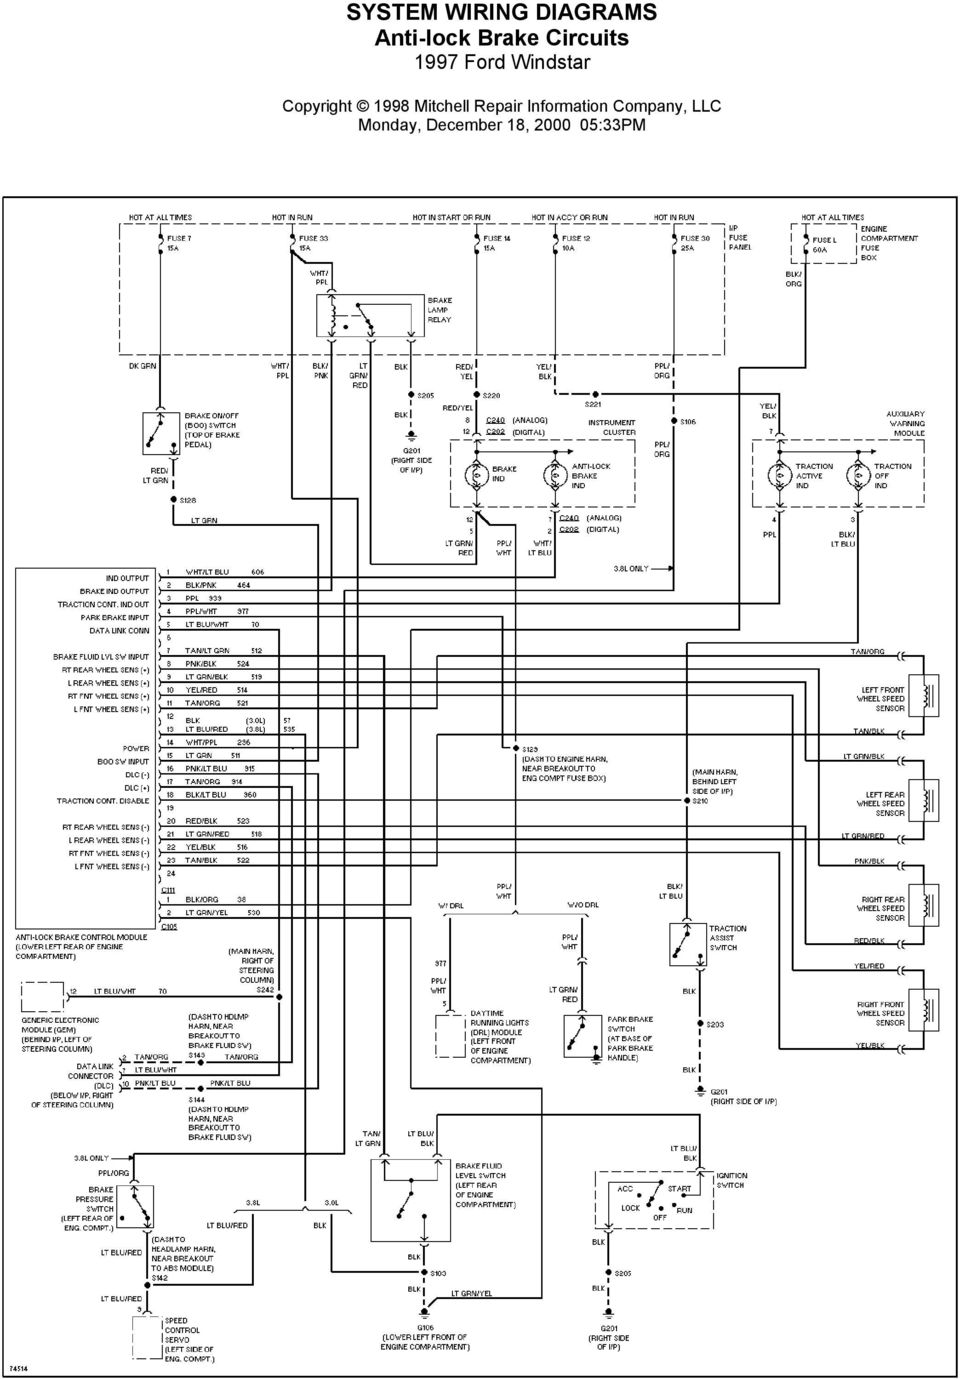 hight resolution of system wiring diagrams air conditioning circuits 1997 ford 1997 audi a4 wiring diagram 1997 chevy silverado ac wiring diagram